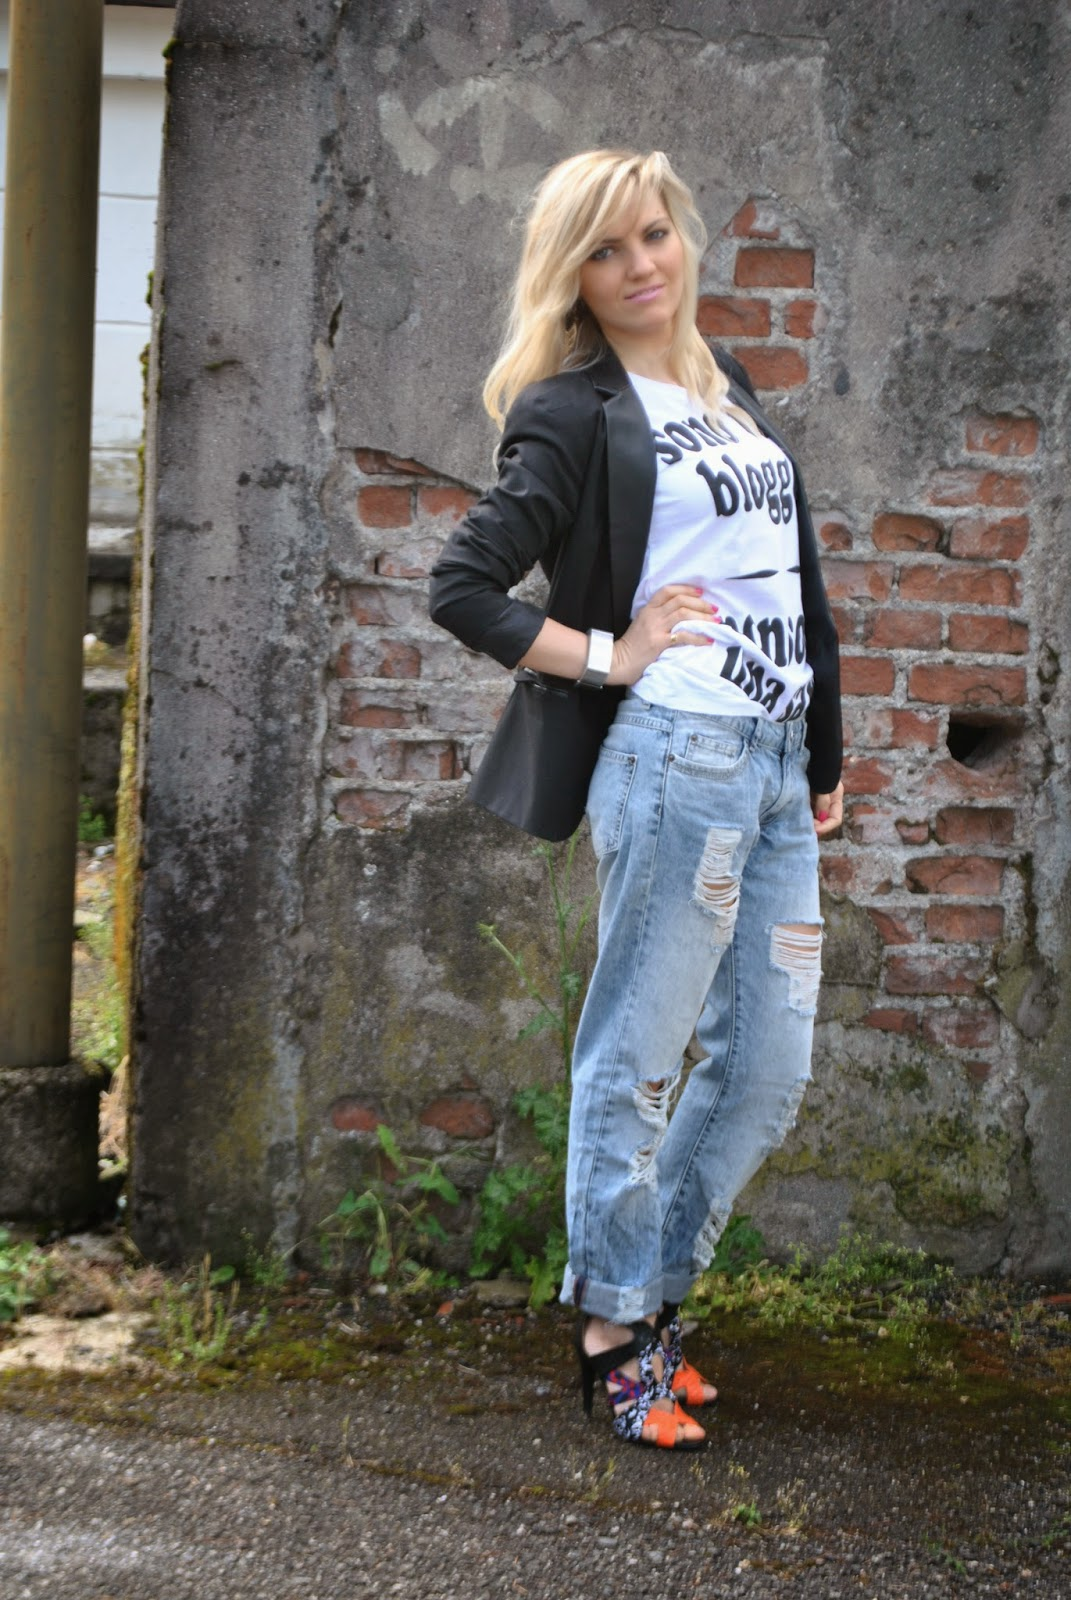 outfit boyfriend ripped jeans outfit tshirt outfit giacca nera mariafelicia magno colorblock by felym mariafelicia magno fashion blogger outfit primaverili donna jeans e tacchi tshirt happiness giacca reverse nera sandali etnici come abbianre la giacca nera come abbinare i boyfirend jeans abbianmenti boyfriend jeans pimkie blogger italiane di moda milano fashion blog italiani ragazze bionde girl italian girl fashion bloggers italy how to wear boyfriend ripped jeans black blazer jeans and heels blondie girls fashion bloggers italy